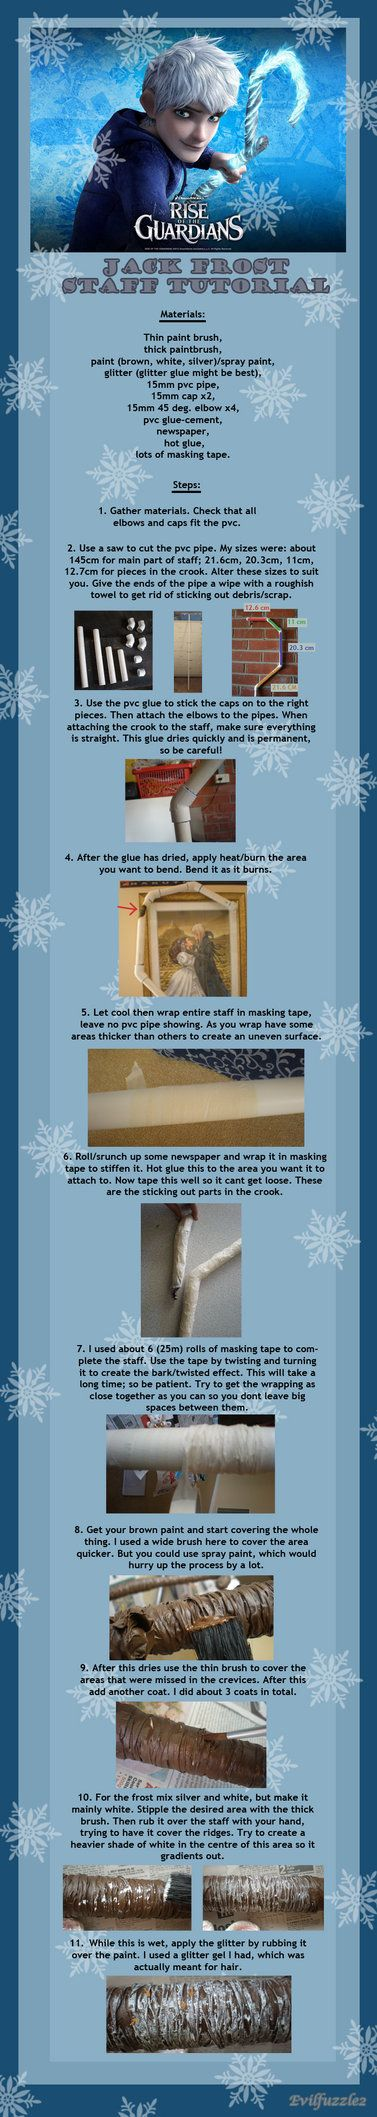 This is my tutorial for how I did my Jack Frost staff. I based it off Apples & Aces staff tutorial. Took about 5 days to complete. Apples and Aces Staff Tutorial: fyeahriseoftheguardians.tumblr...